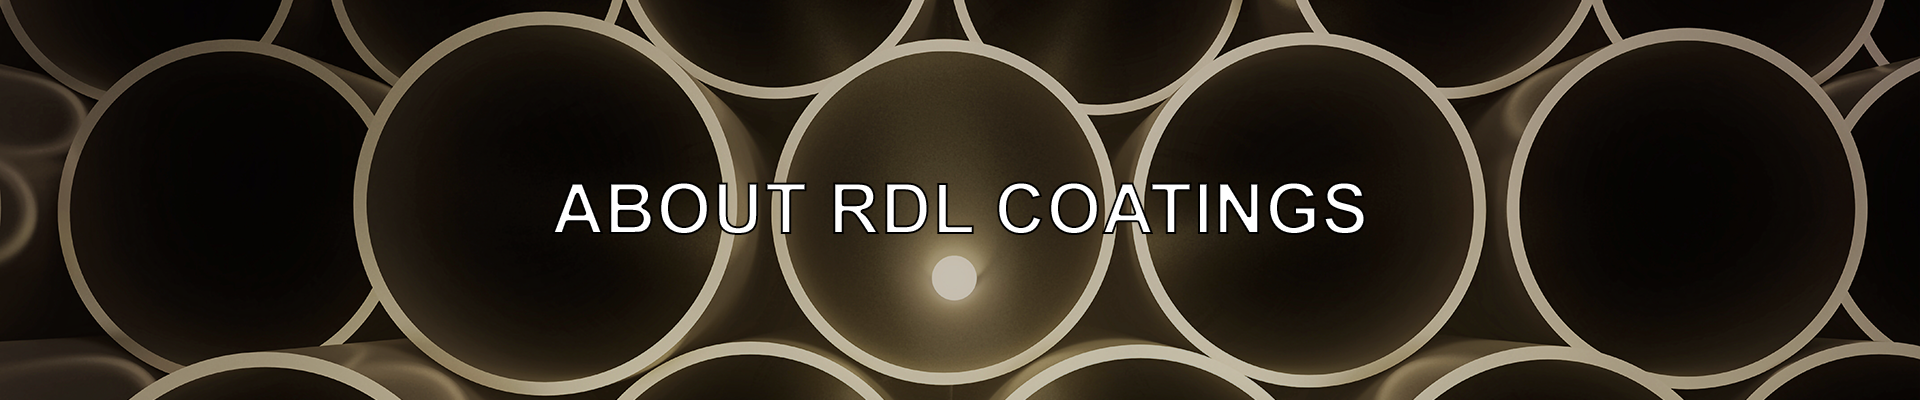 About RDL Coatings